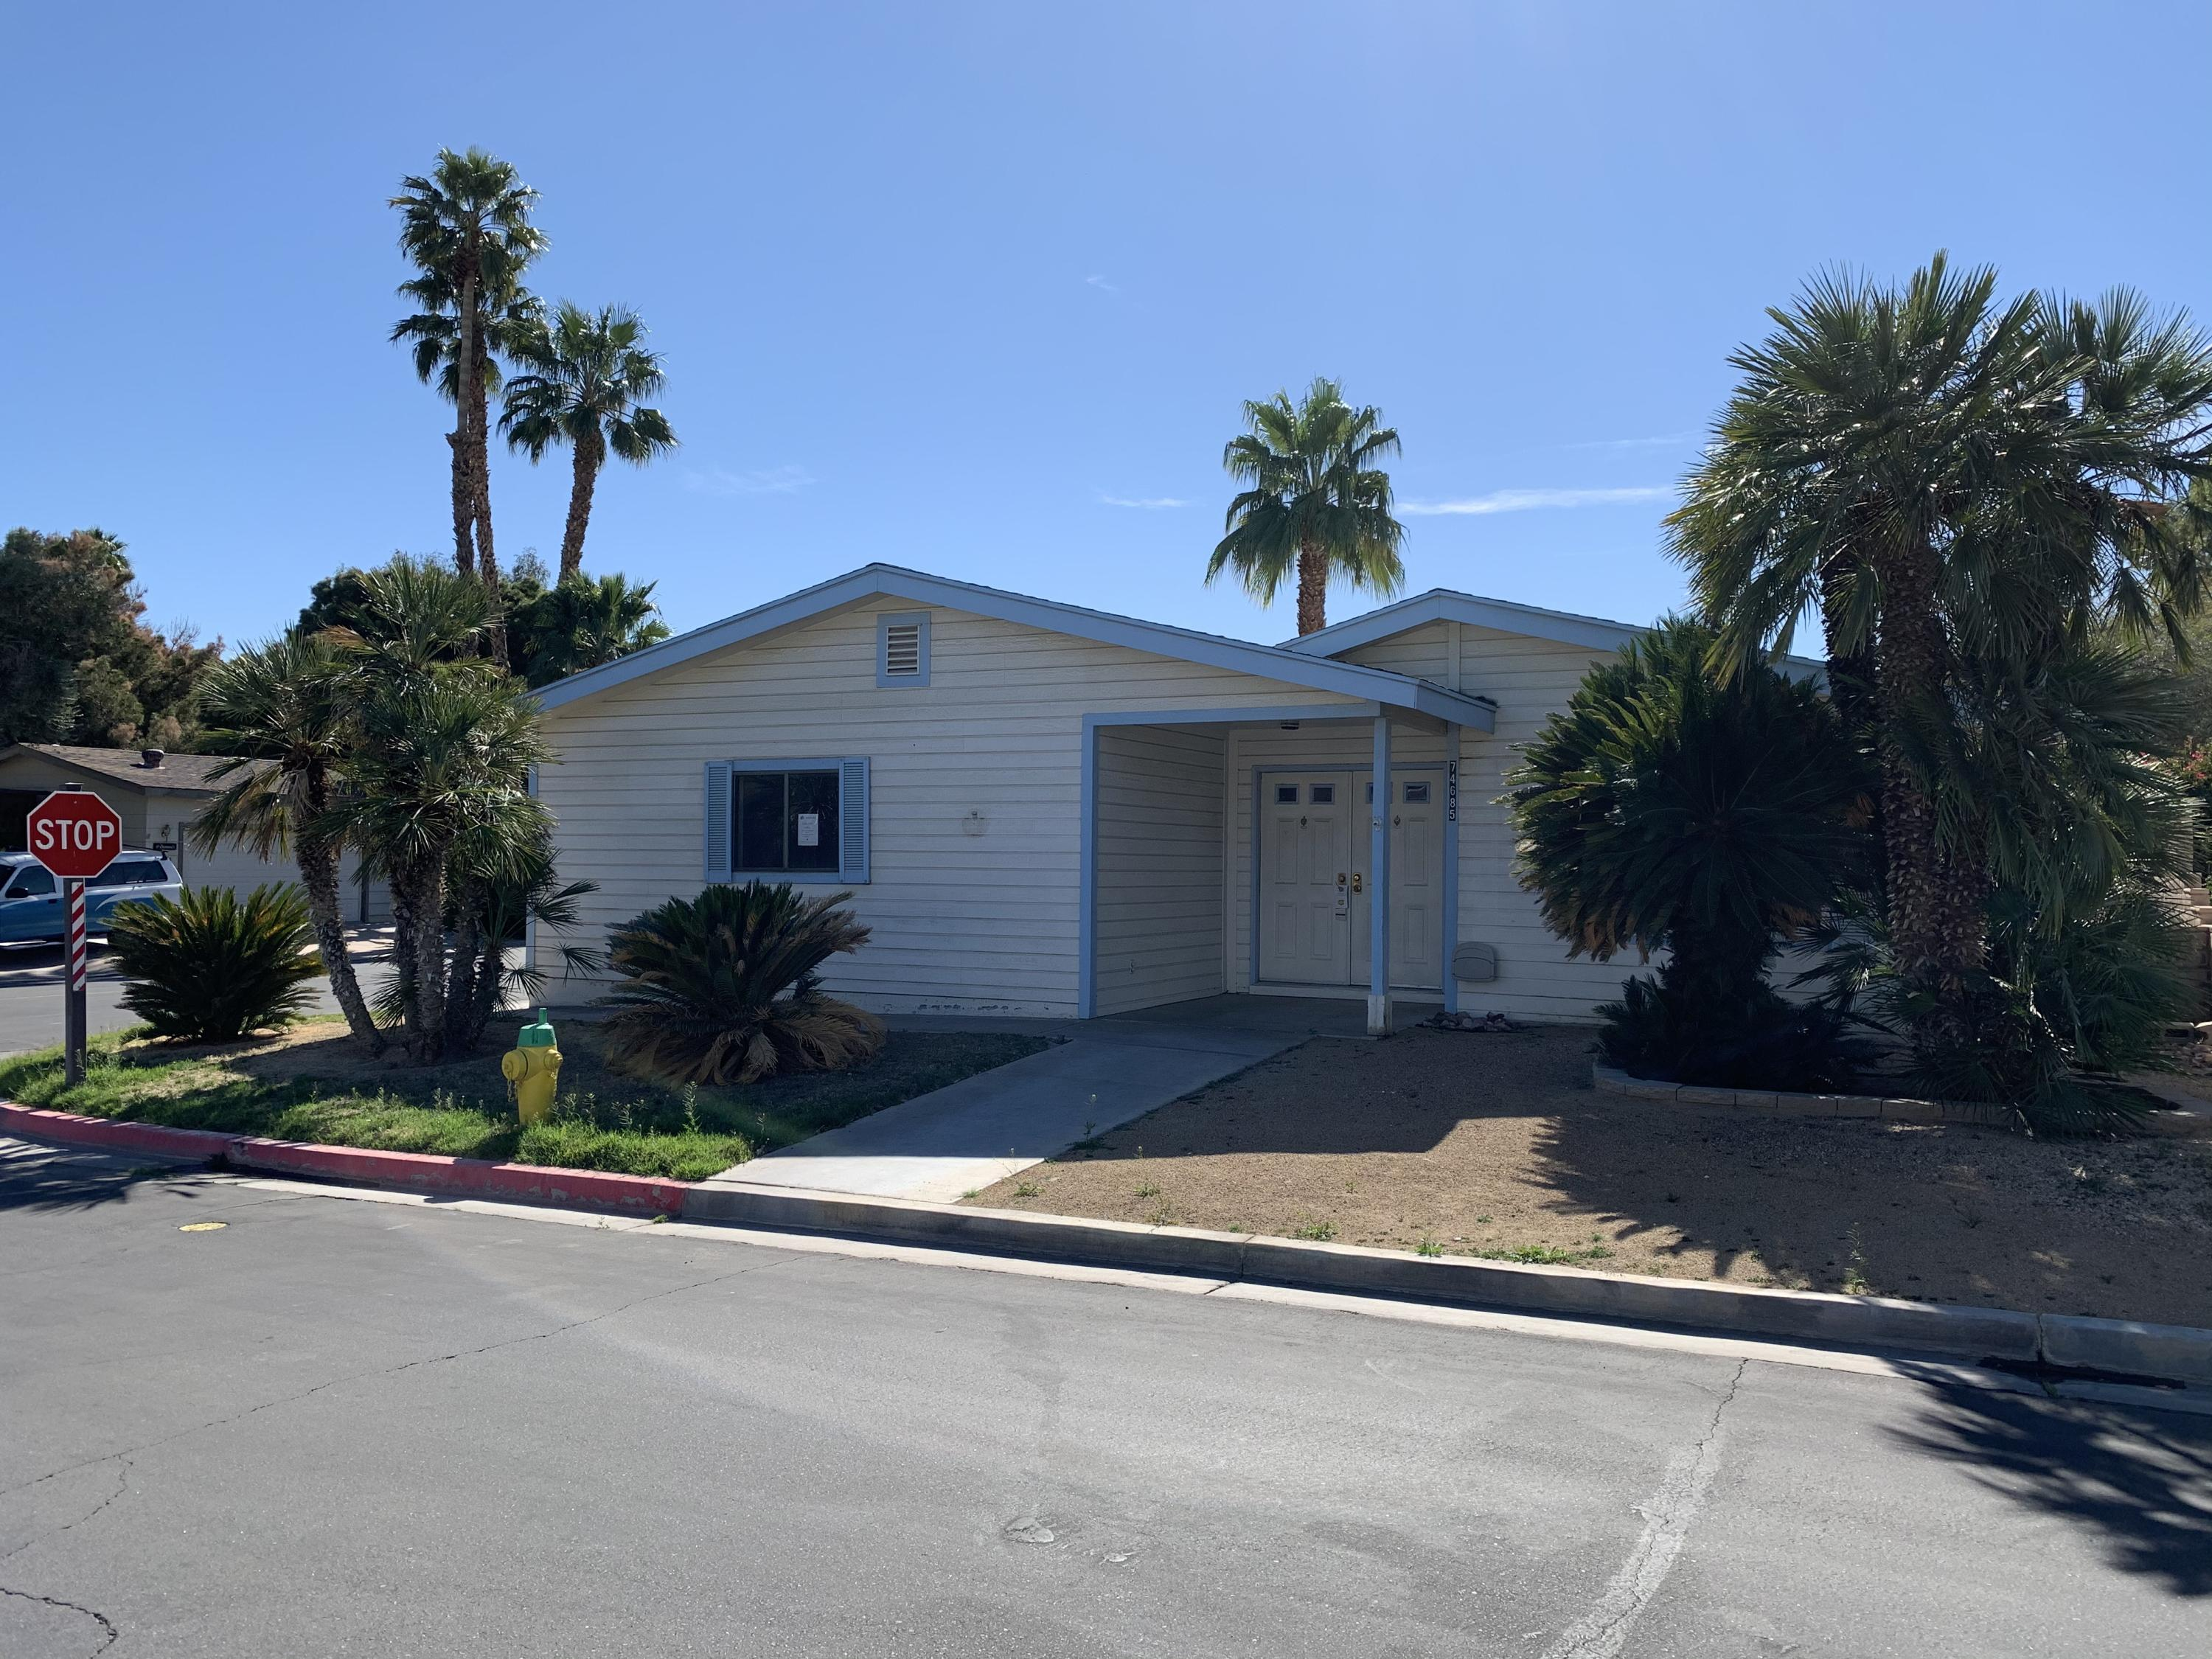 Photo of 74685 Mexicali Rose, Thousand Palms, CA 92276